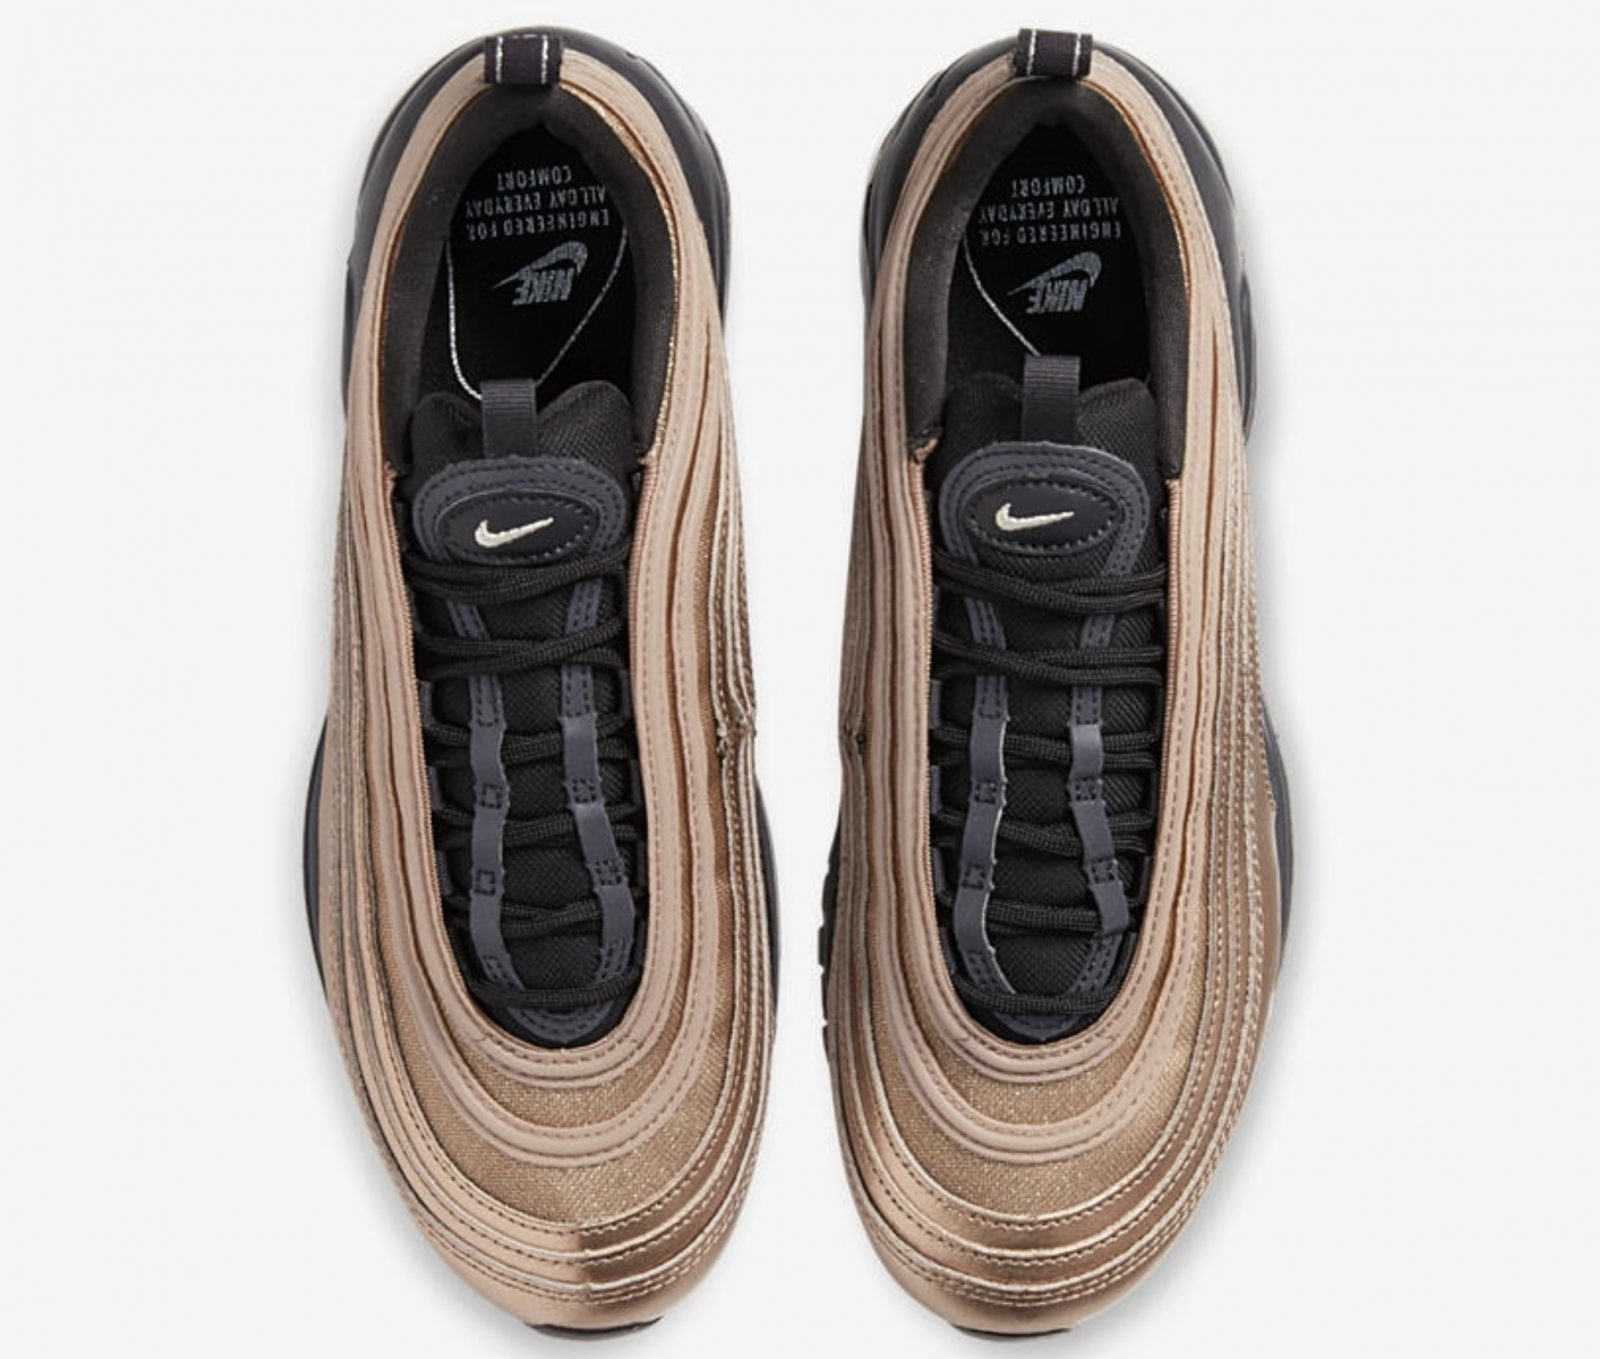 Get Seasonal In The Latest Nike Air Max 97 Metallic Gold laces